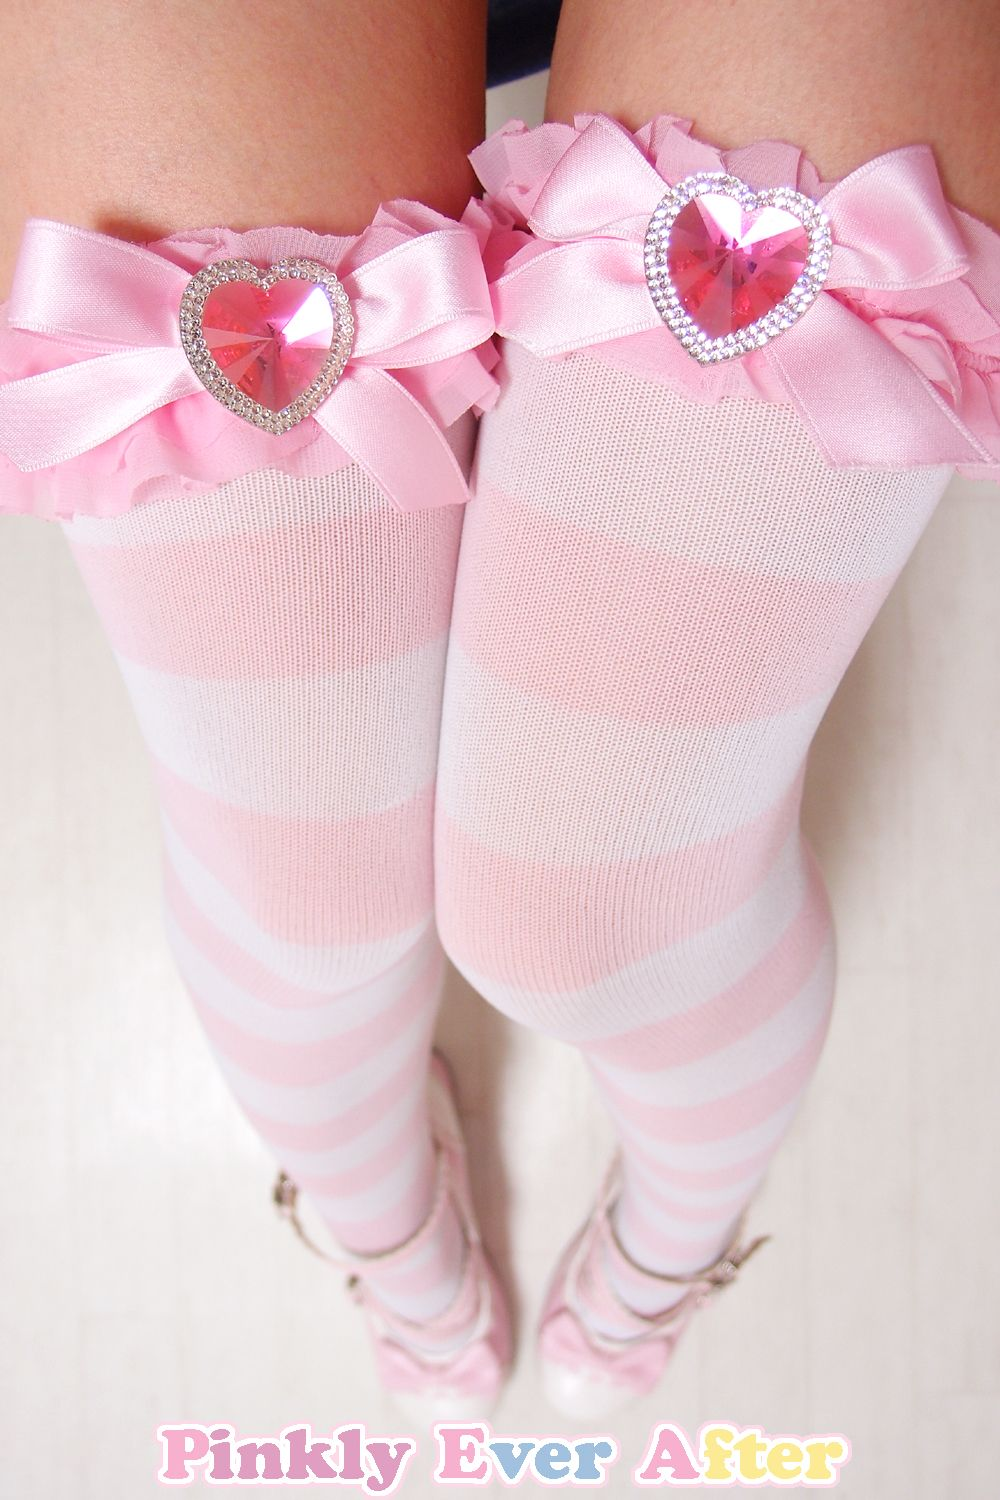 6bd008c464c5fd Powerful Pink Crystal Over-Knee Socks from Pinkly Ever After on Storenvy